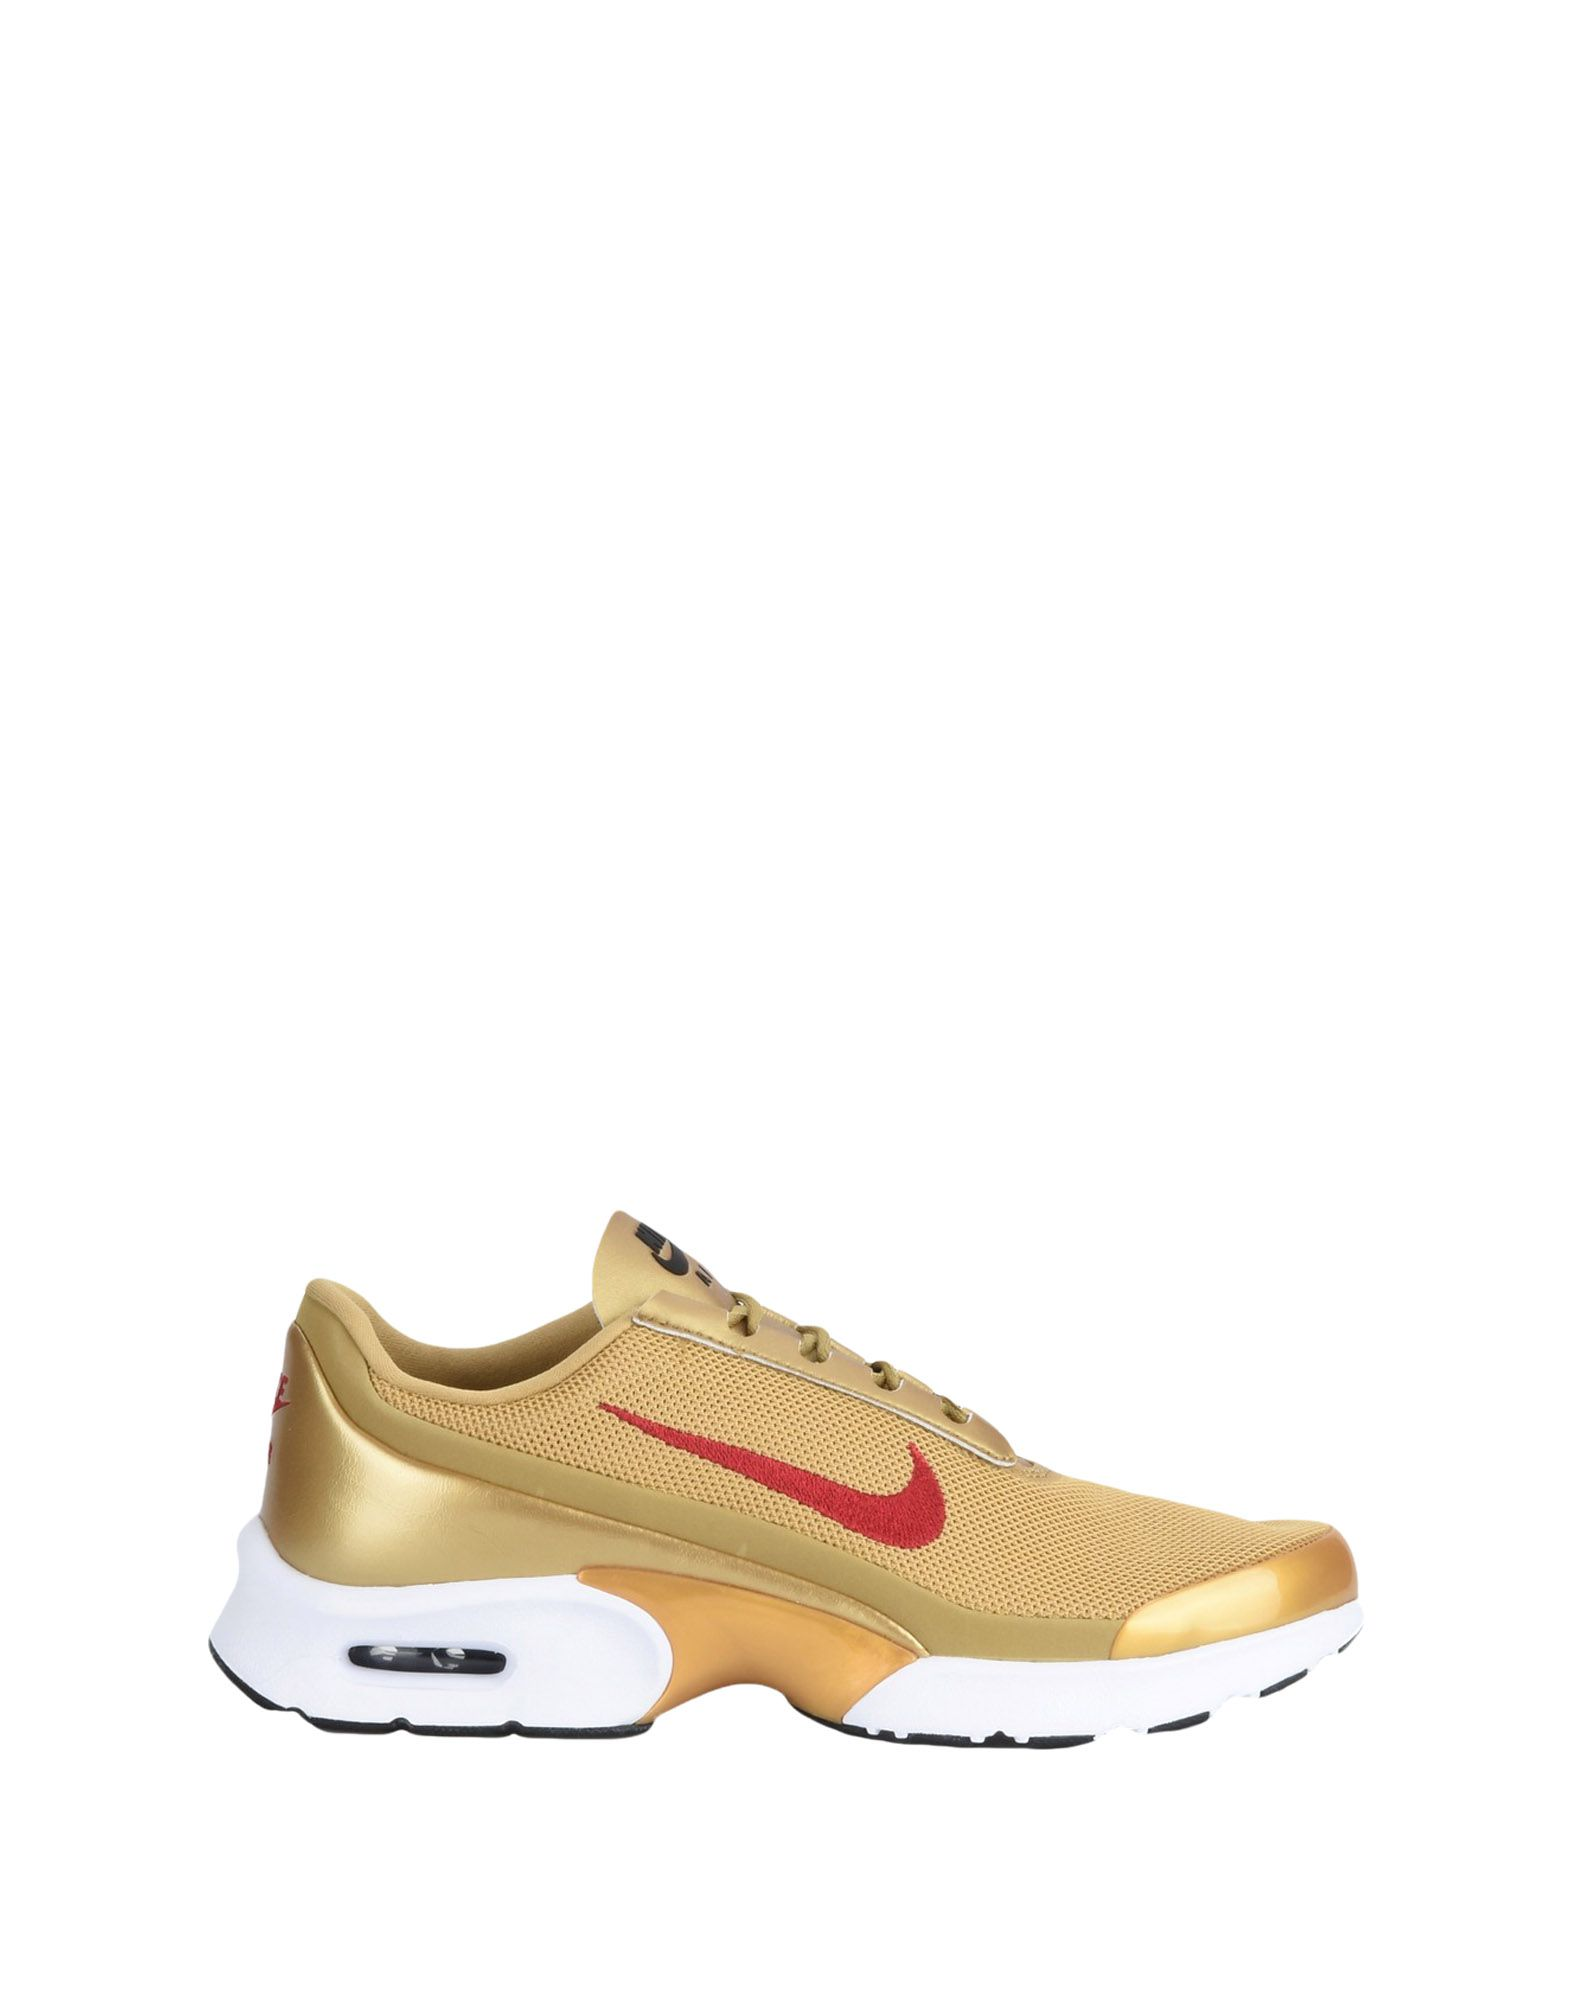 wholesale dealer 05796 02029 Sneakers Jewell QbA9HTxL Nike Nike Femme Max sur Qs Sneakers Air nwPBqgfHY